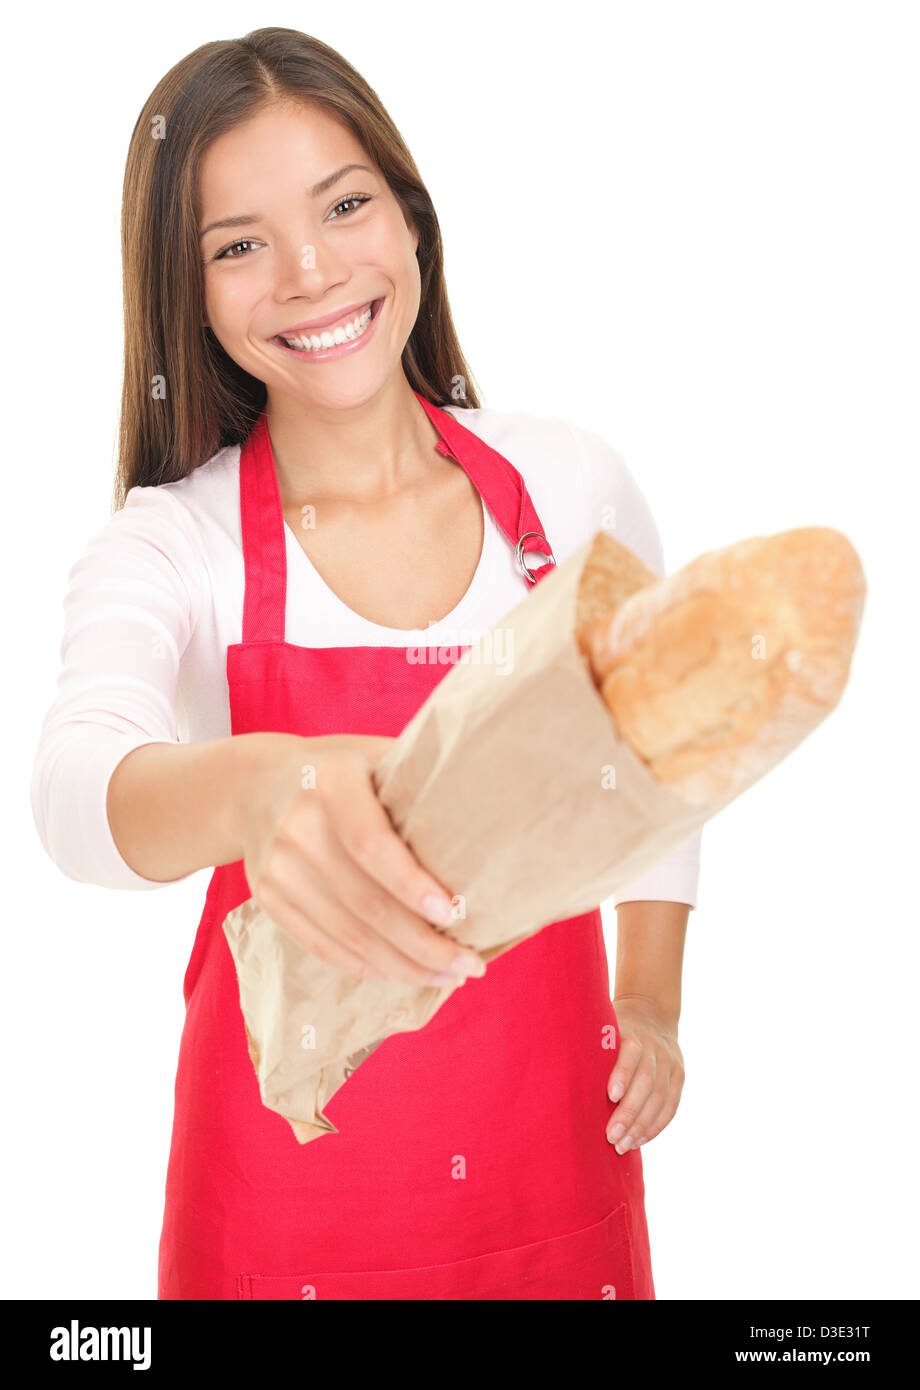 Portrait of beautiful mixed race Caucasian / Asian woman sales clerk giving bread to customer isolated on white - Stock Image